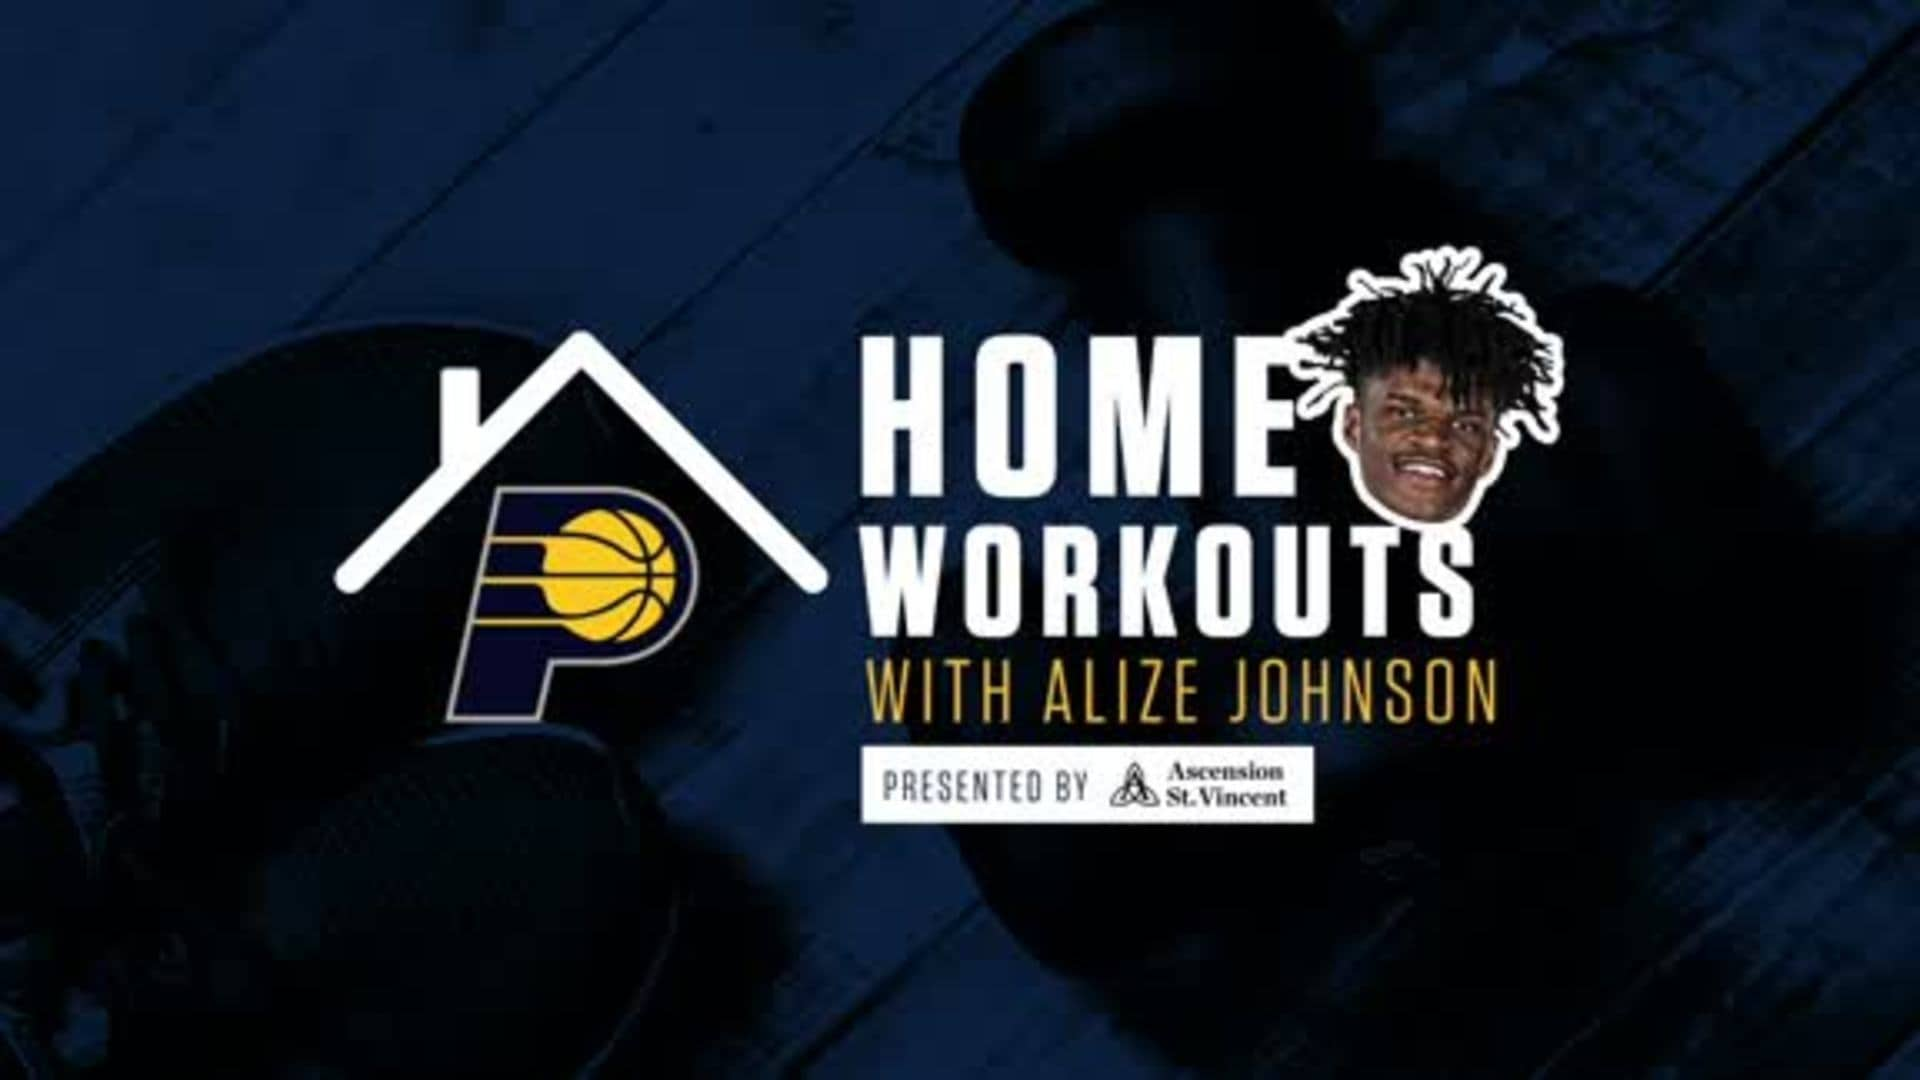 Home Workouts with Alize Johnson